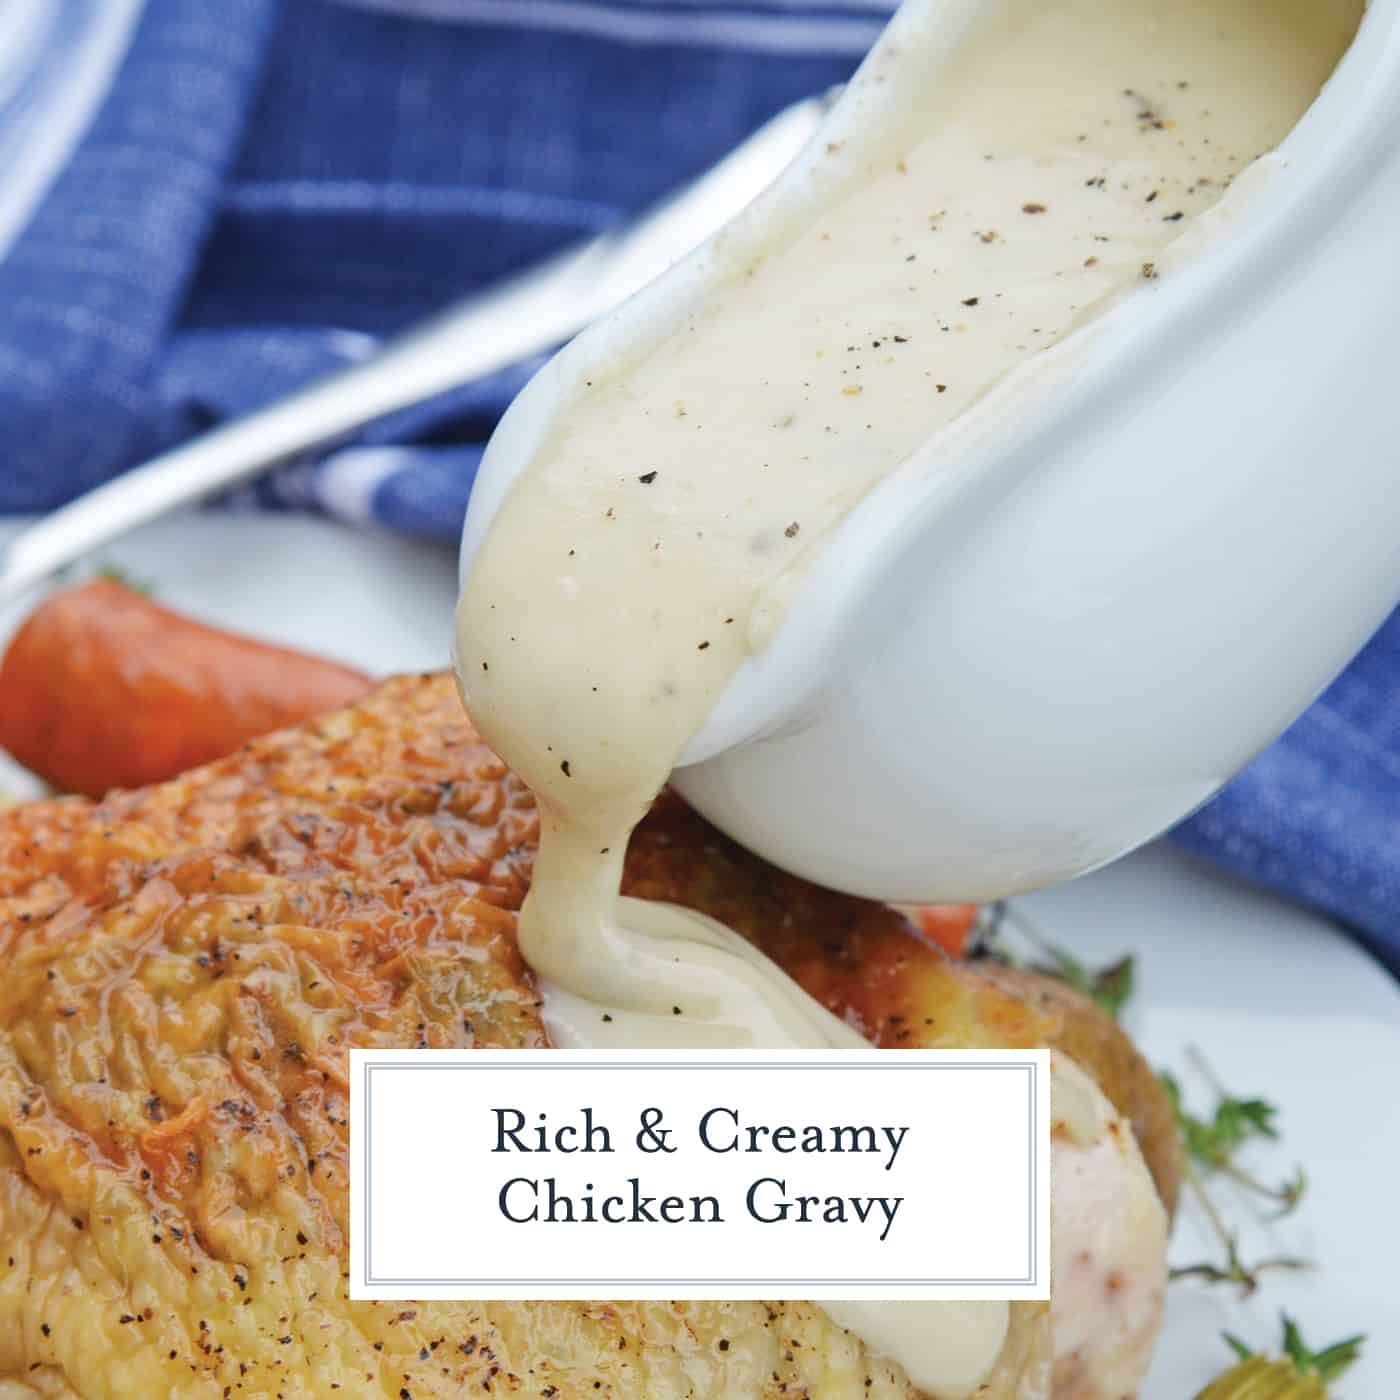 Easy Chicken Gravy made with chicken drippings is the best homemade chicken gravy recipe! It only takes 10 minutes and ingredients you already have in your pantry. #chickengravyrecipe #homemadechickengravy www.savoryexperiments.com